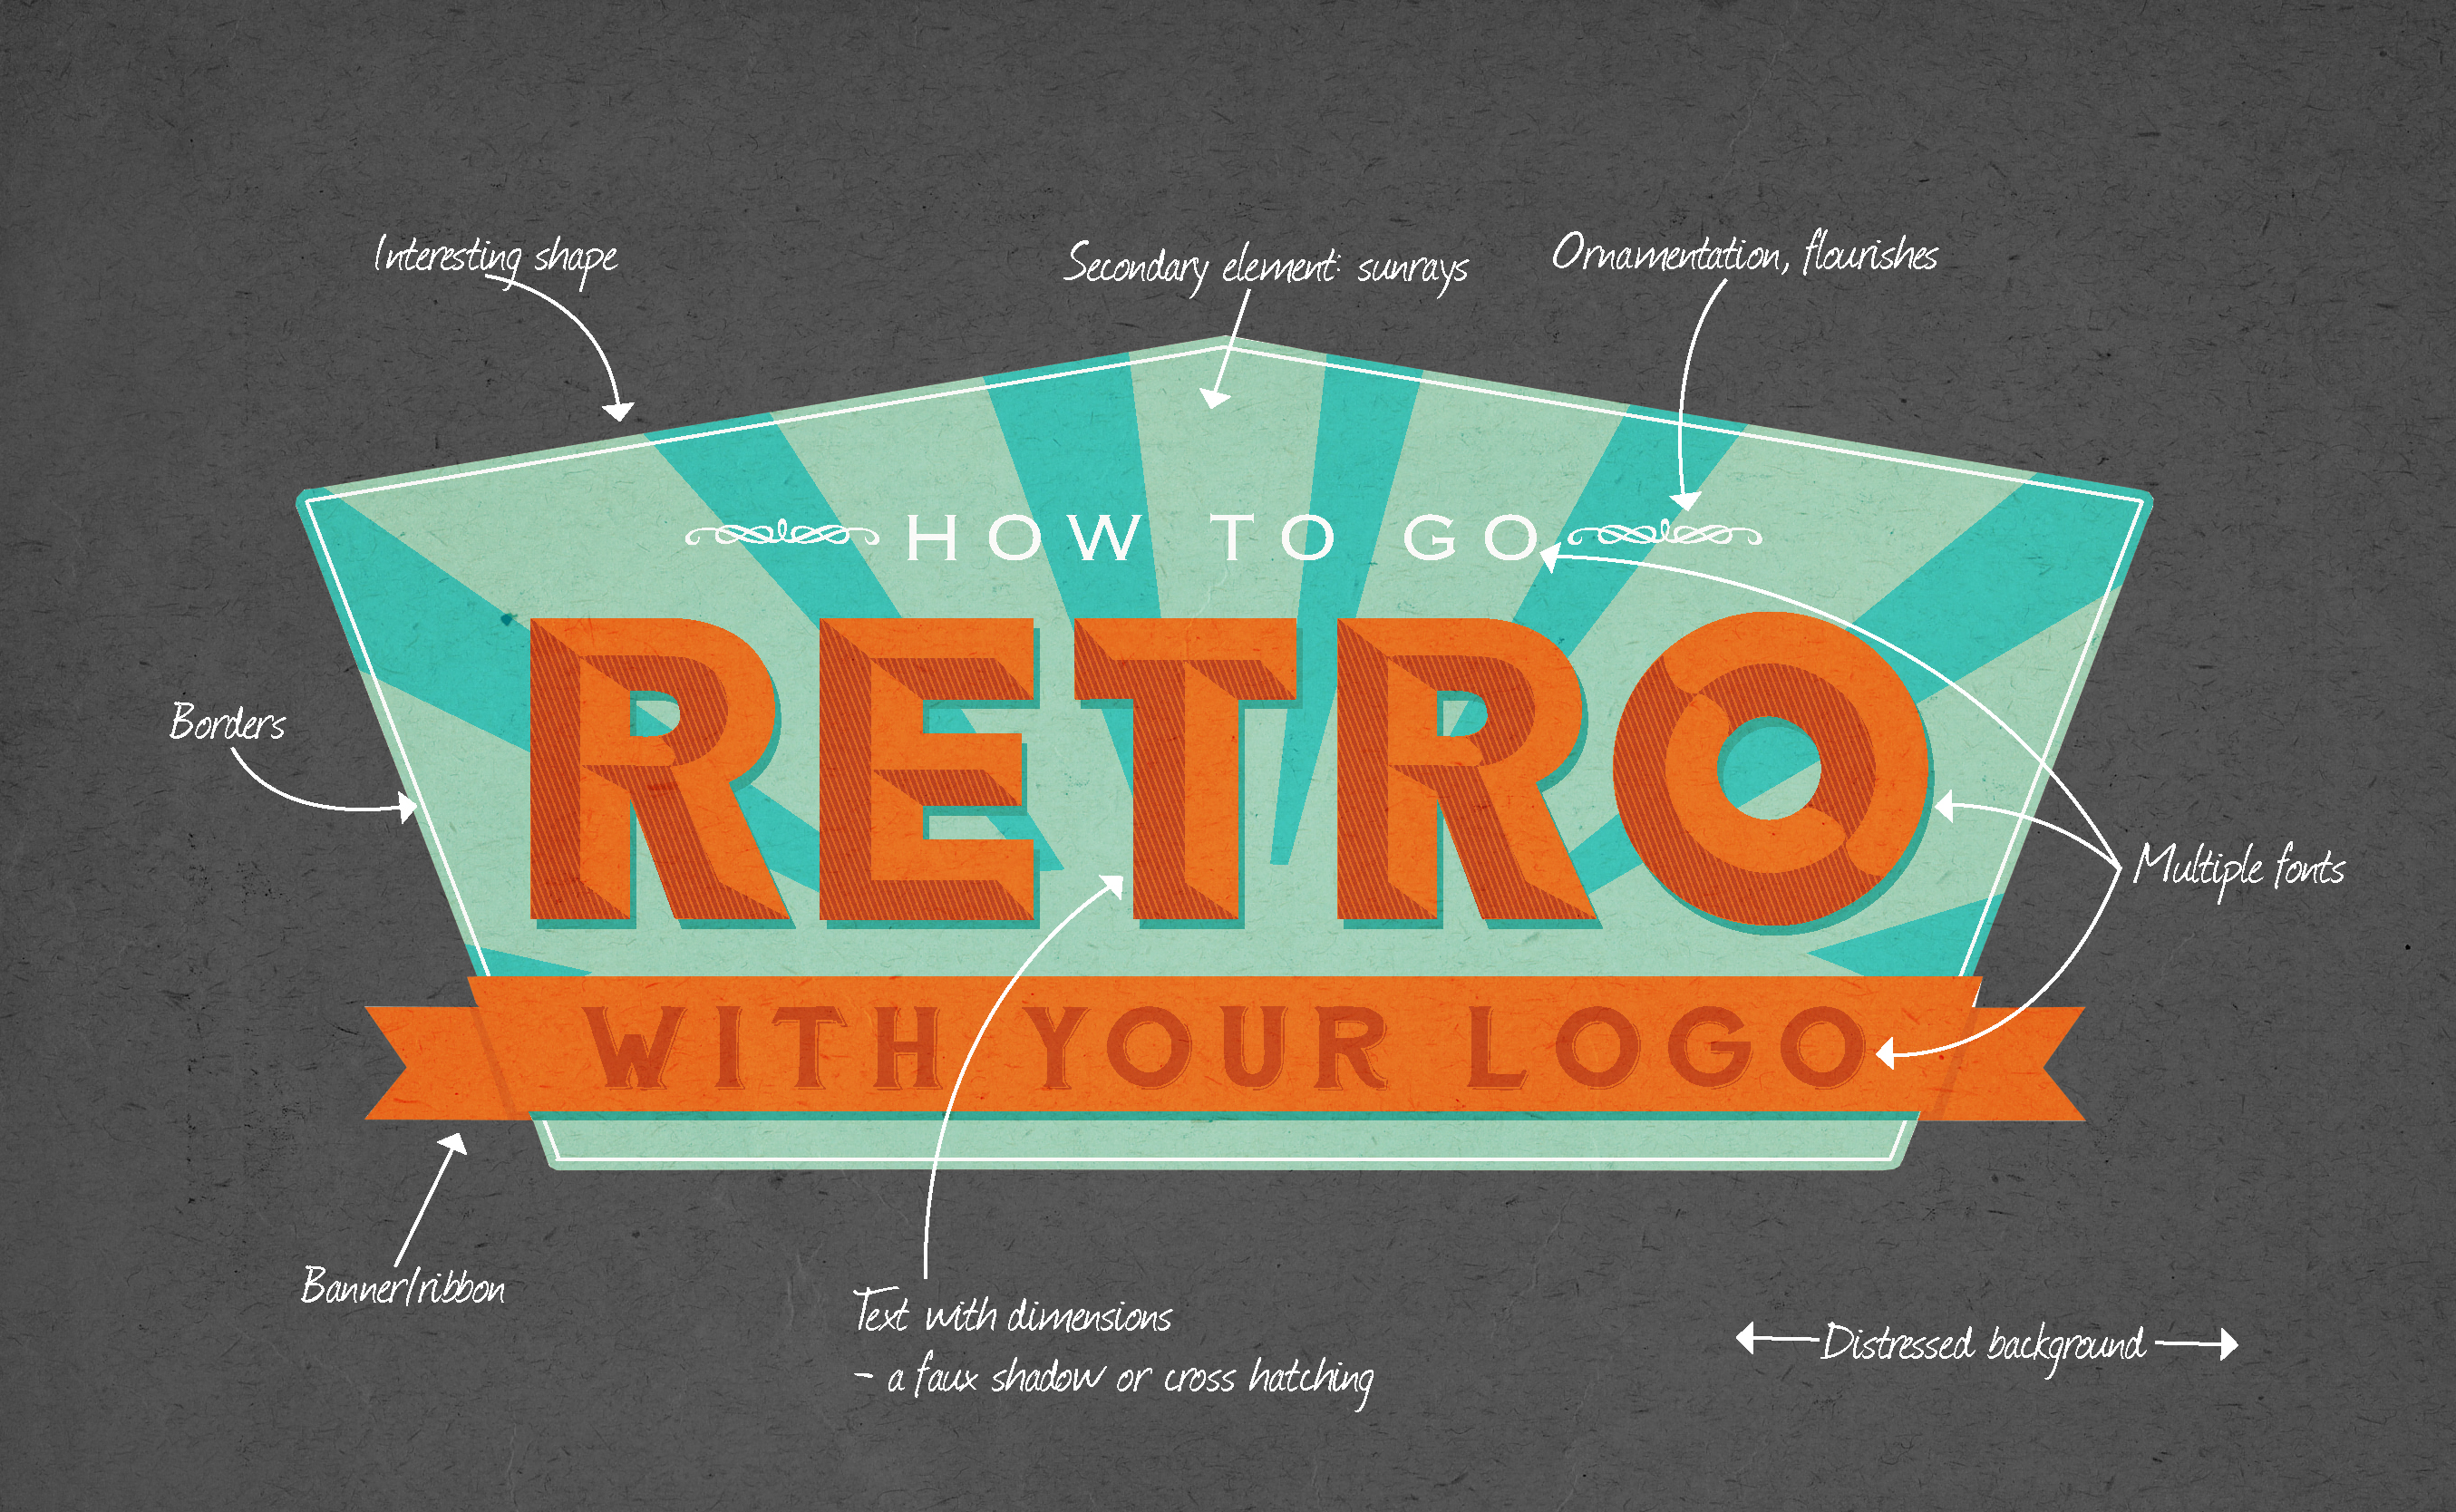 Returning To Retro With Your Logo